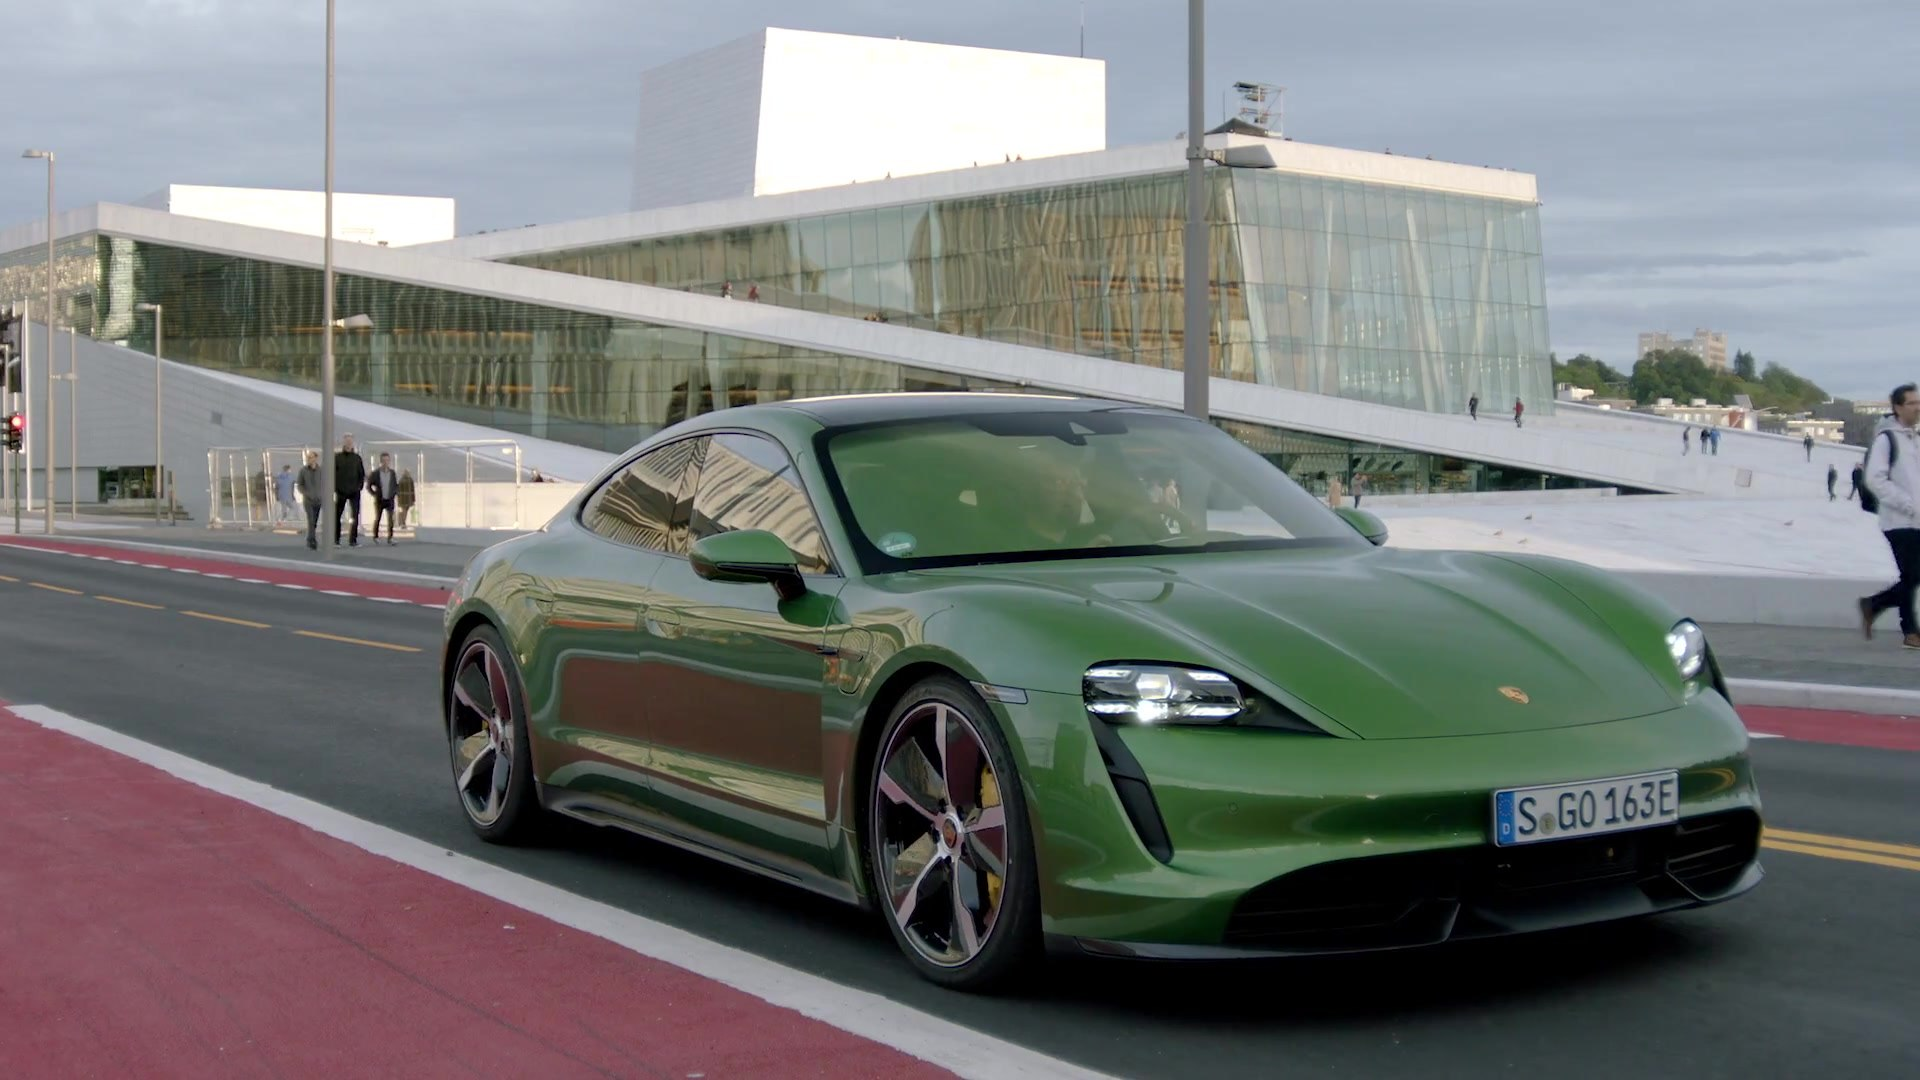 The New Porsche Taycan Turbo S In Mamba Green Driving Video Video Dailymotion